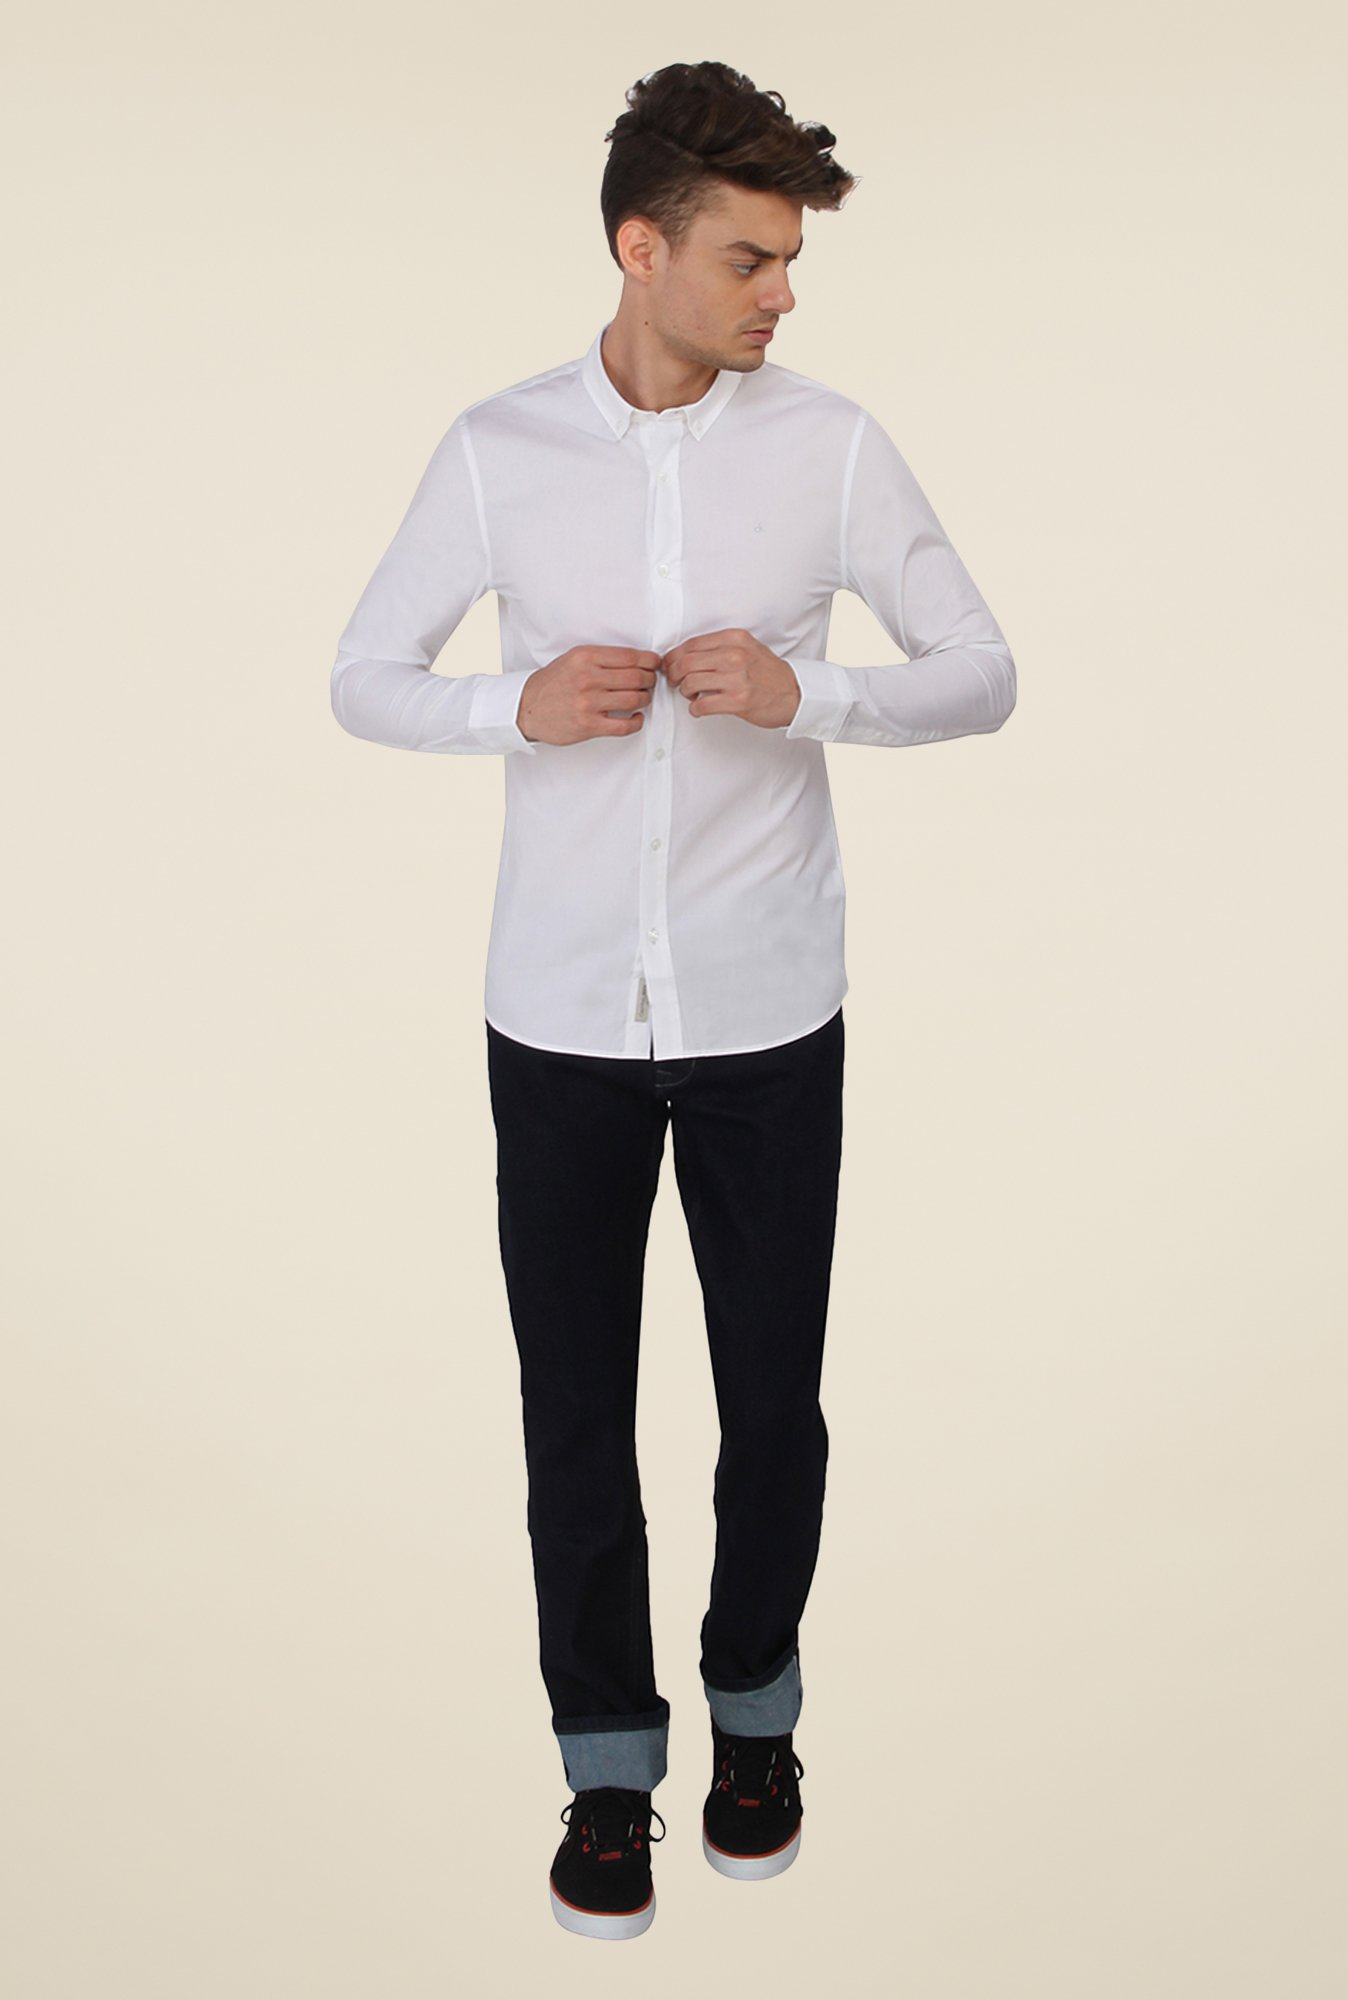 Calvin Klein White Solid Shirt